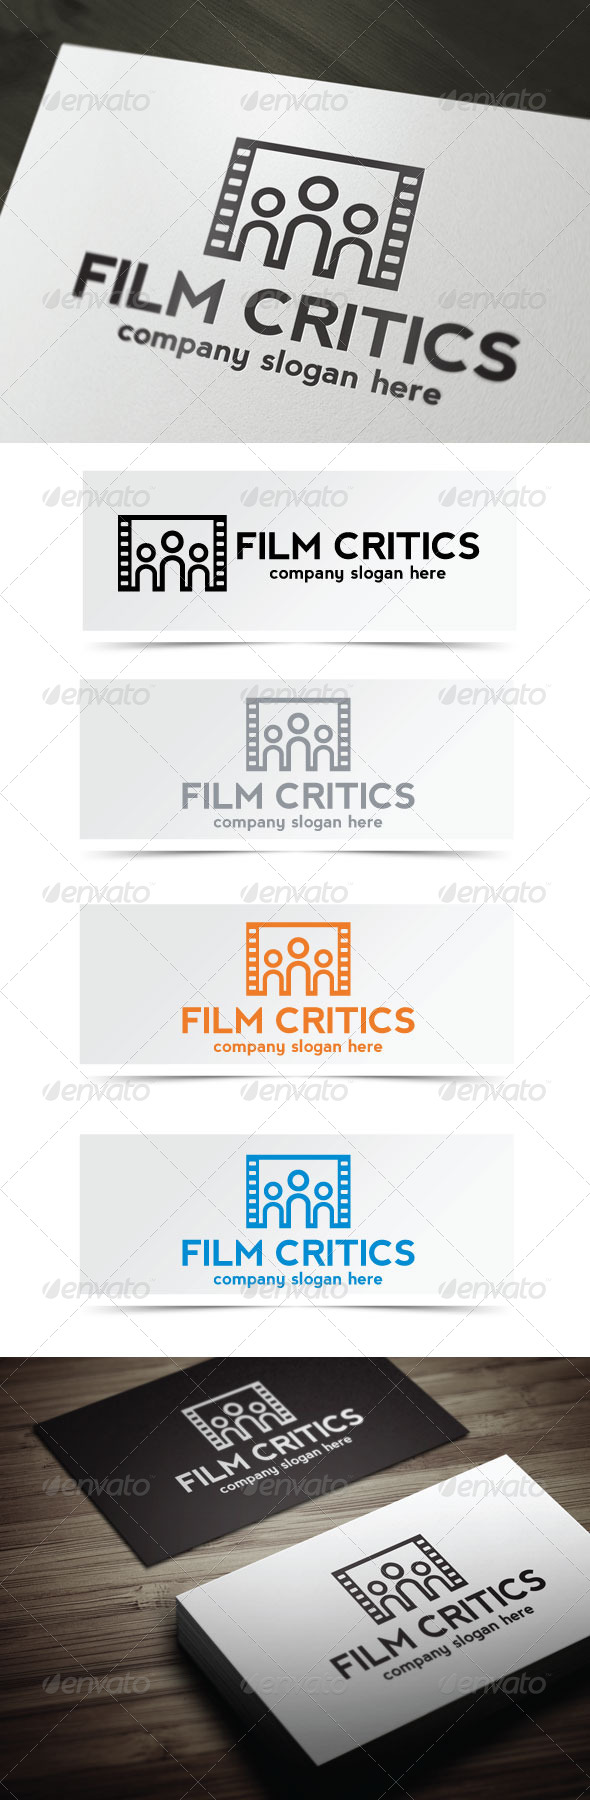 GraphicRiver Film Critics 4245668